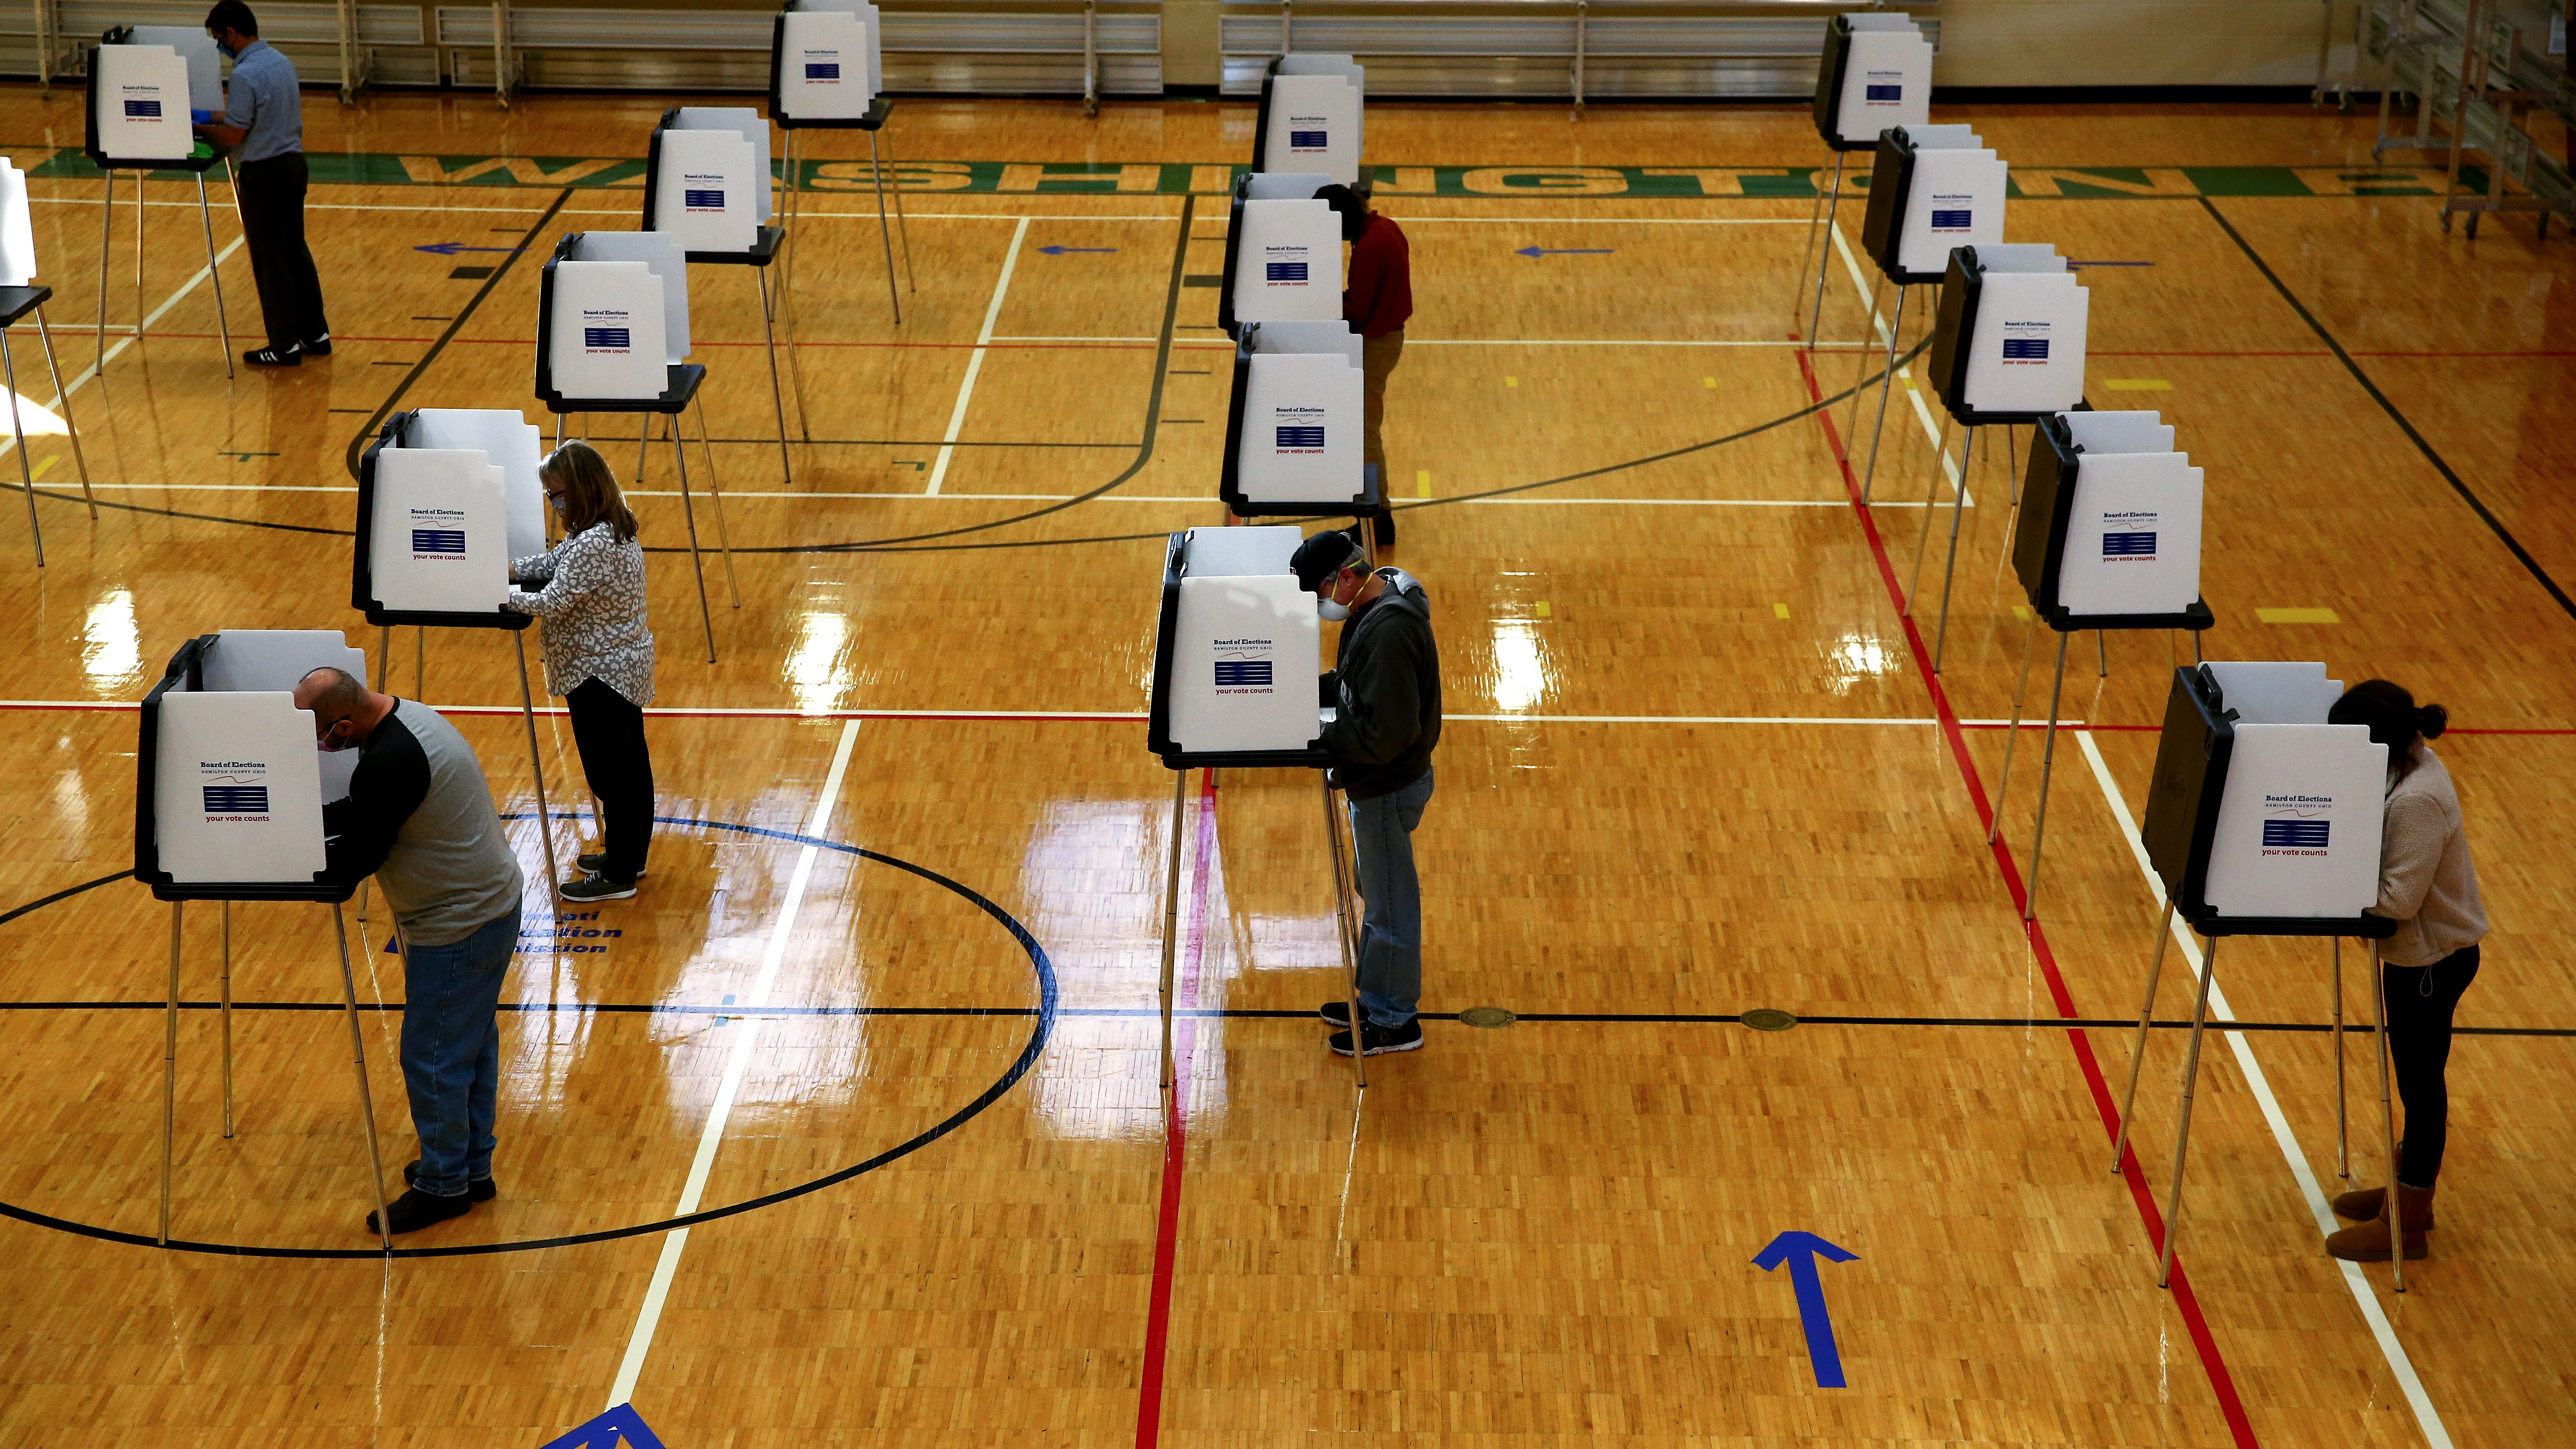 Opinion: Battleground states should model election reforms after Ohio